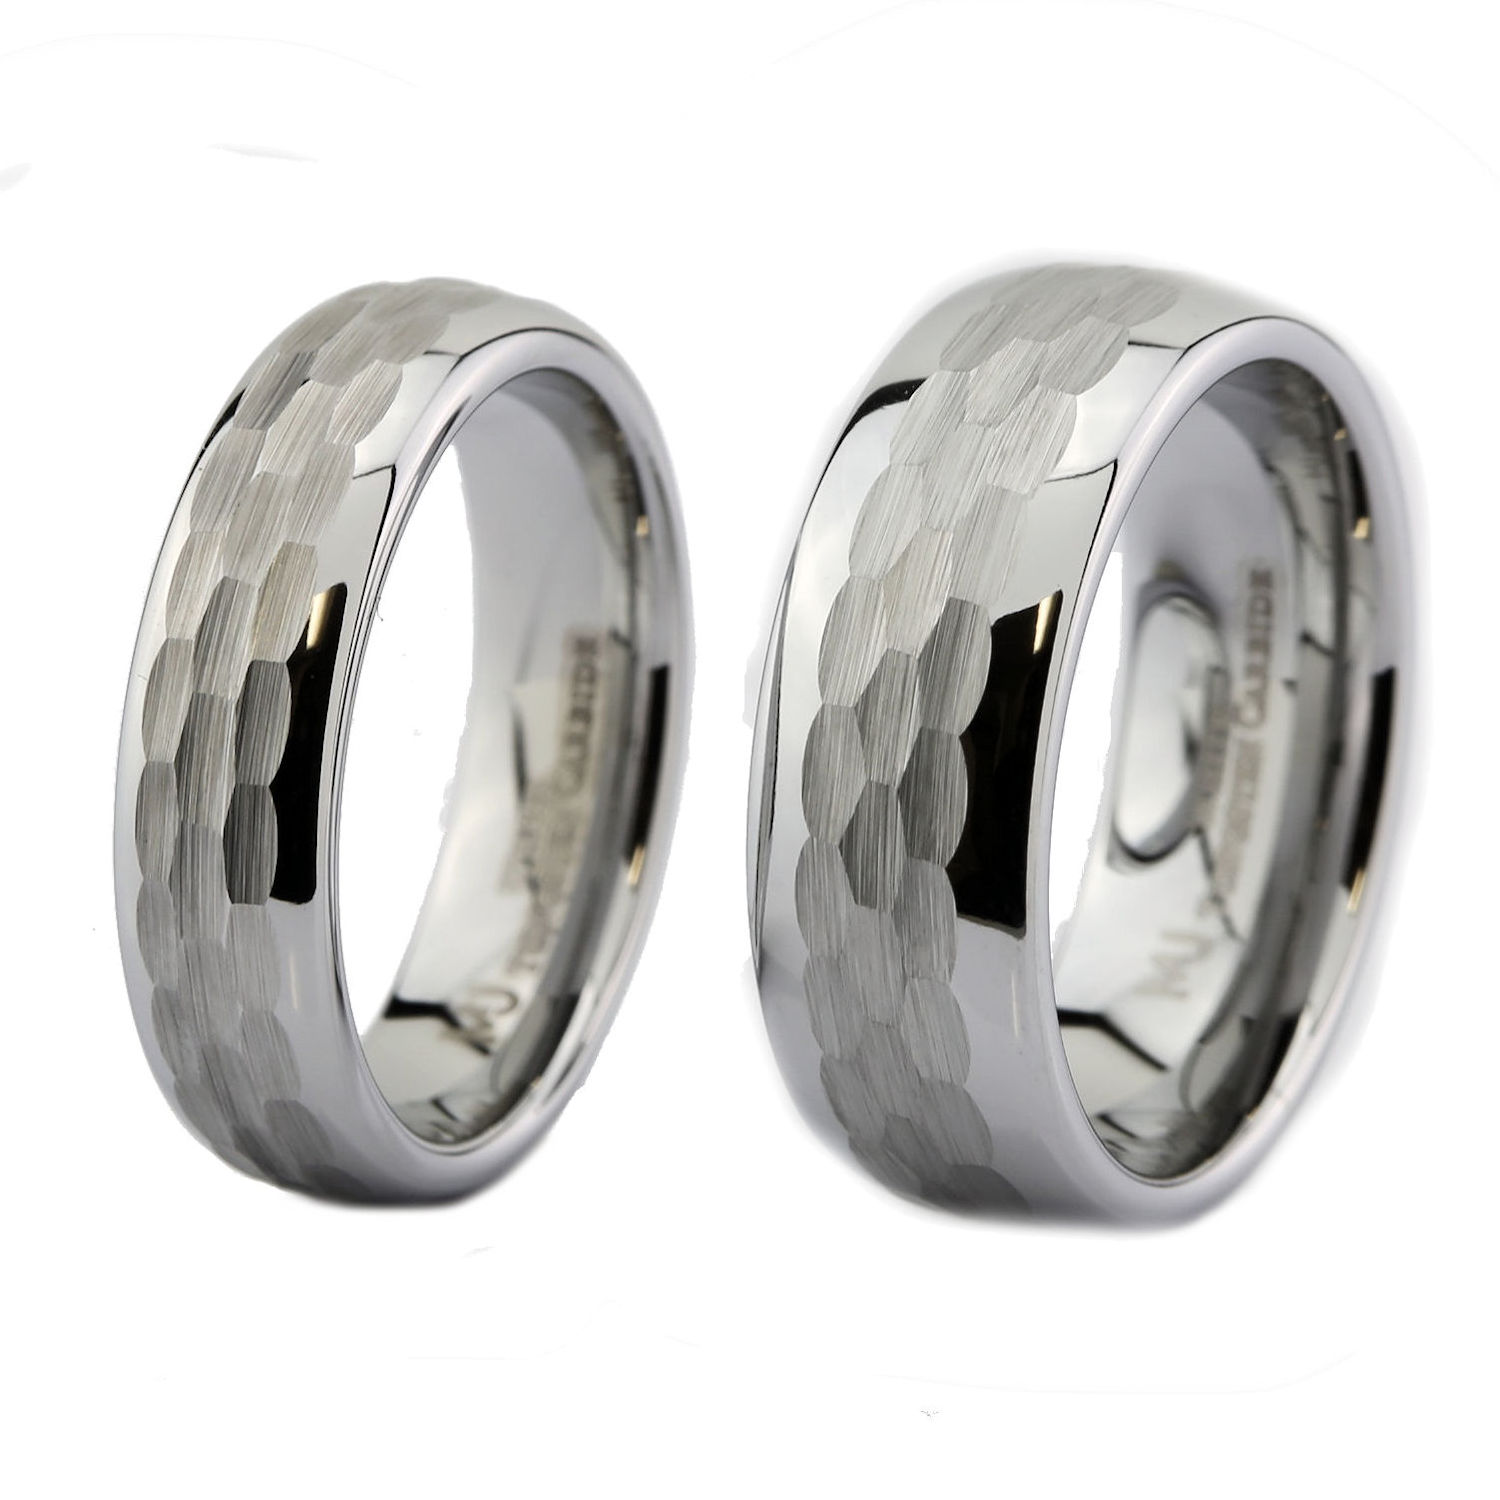 White-Tungsten-Carbide-Hammered-Center-6mm-or-8mm-Wedding-Band-Ring thumbnail 8